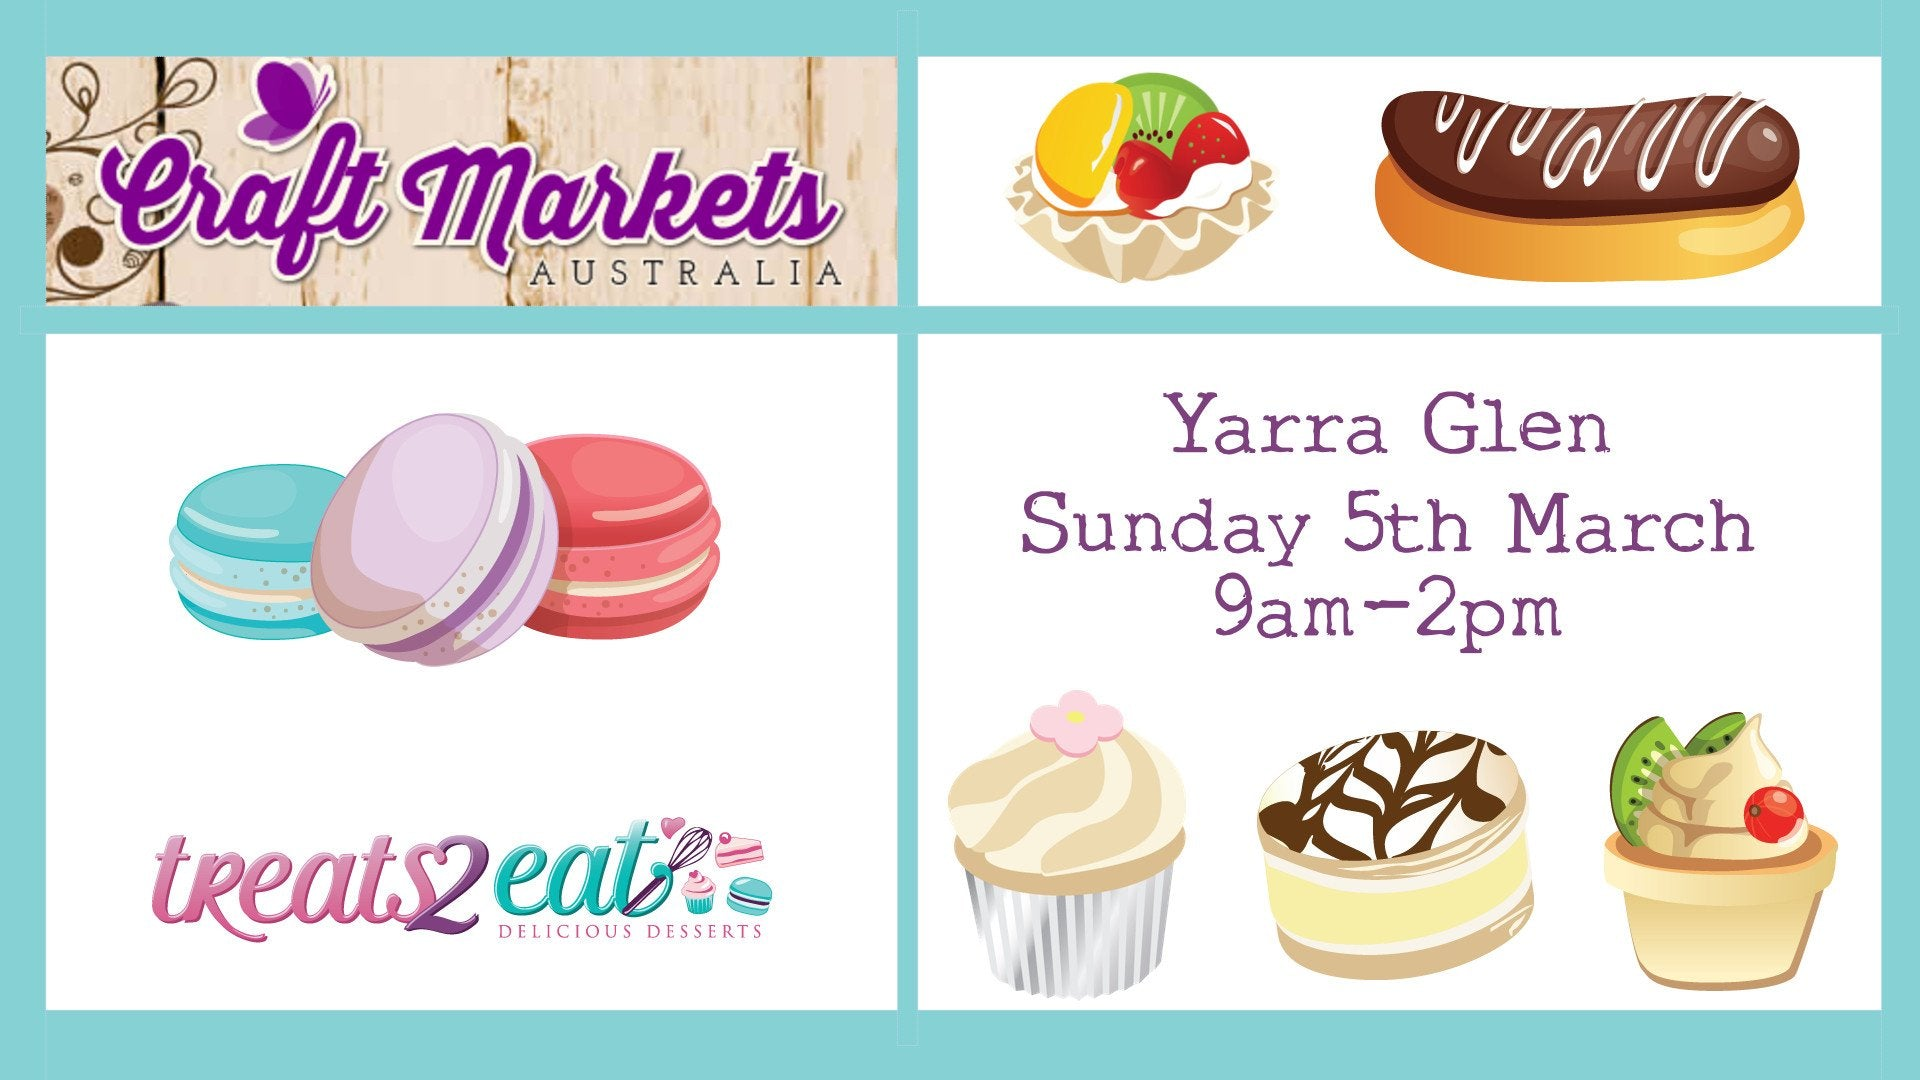 Treats2eat at the Yarra Glen Market